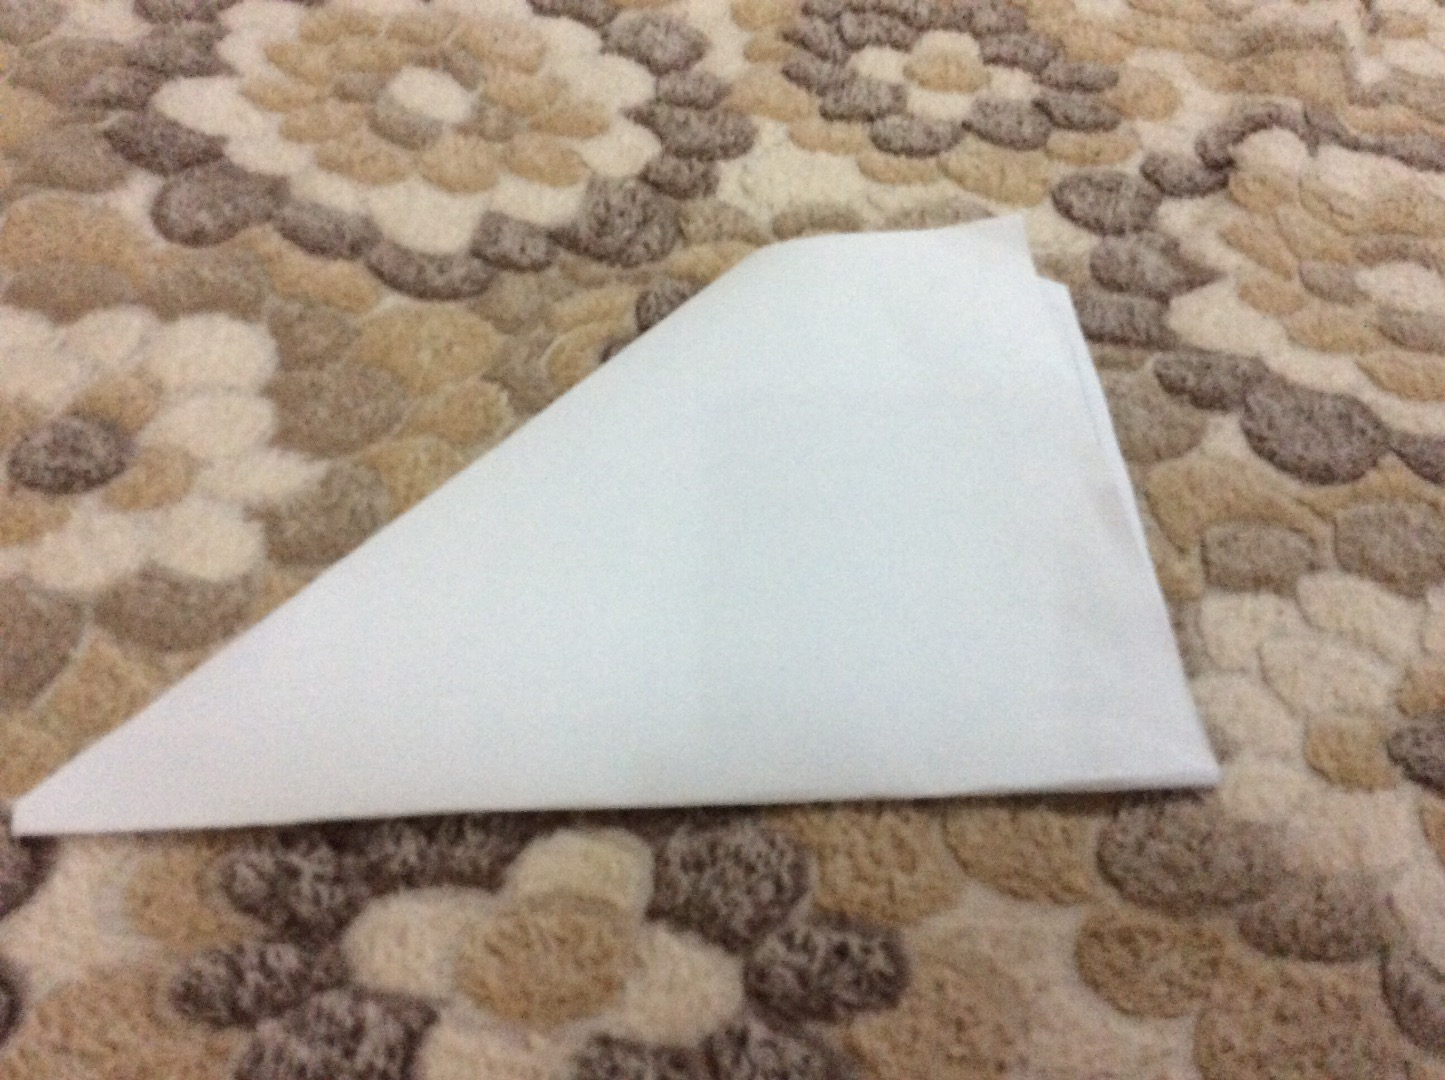 Picture of Flapping Wing